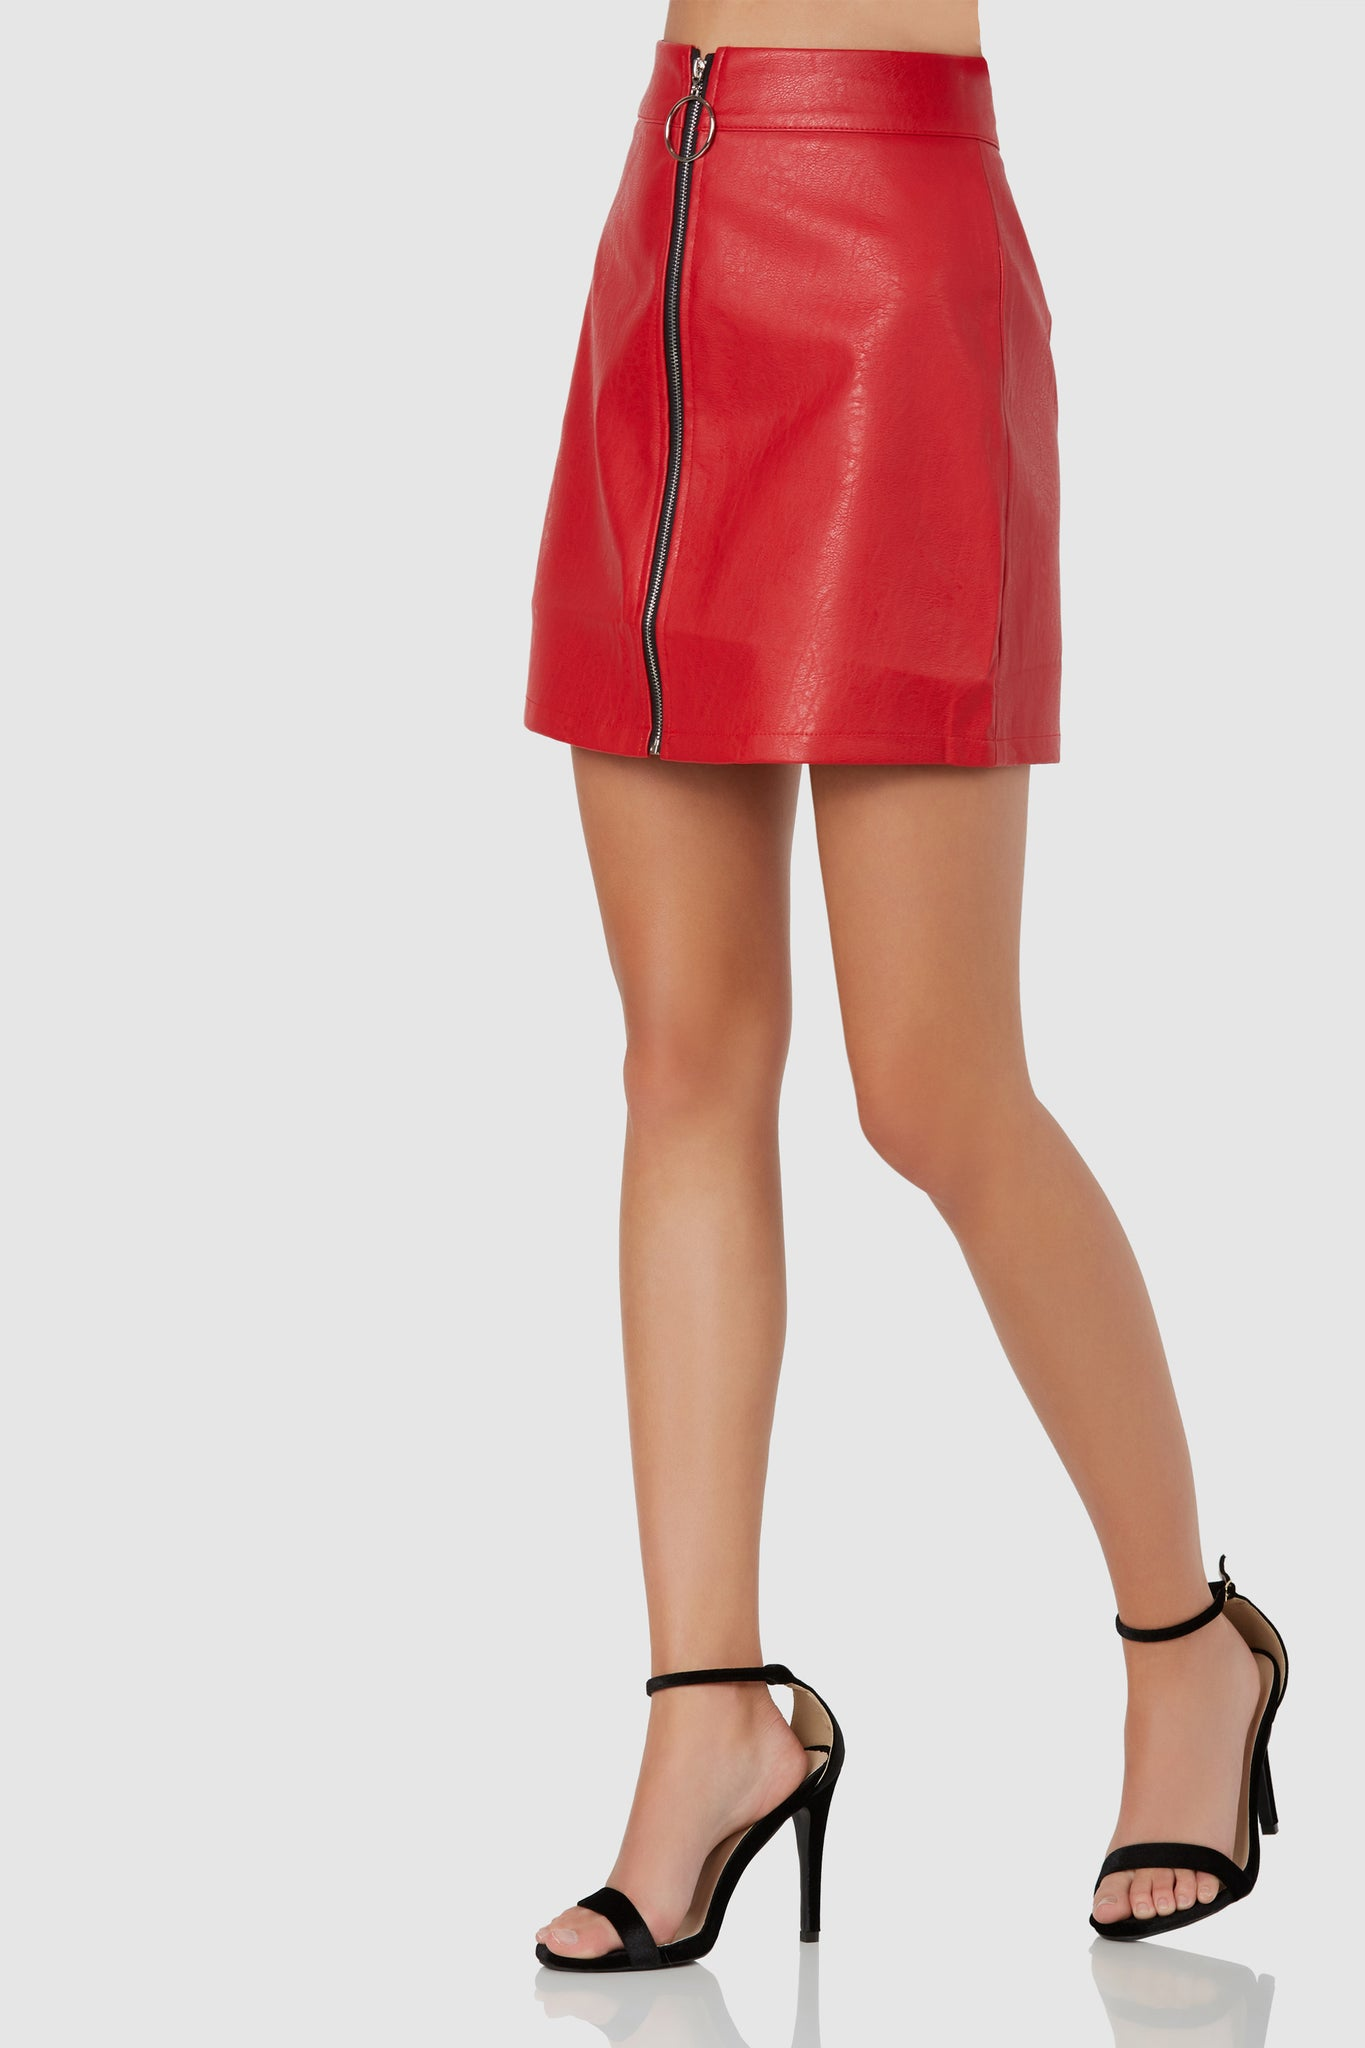 Stylish A-line mini skirt with faux leather exterior. Front contrast zip closure with hoop detailing.